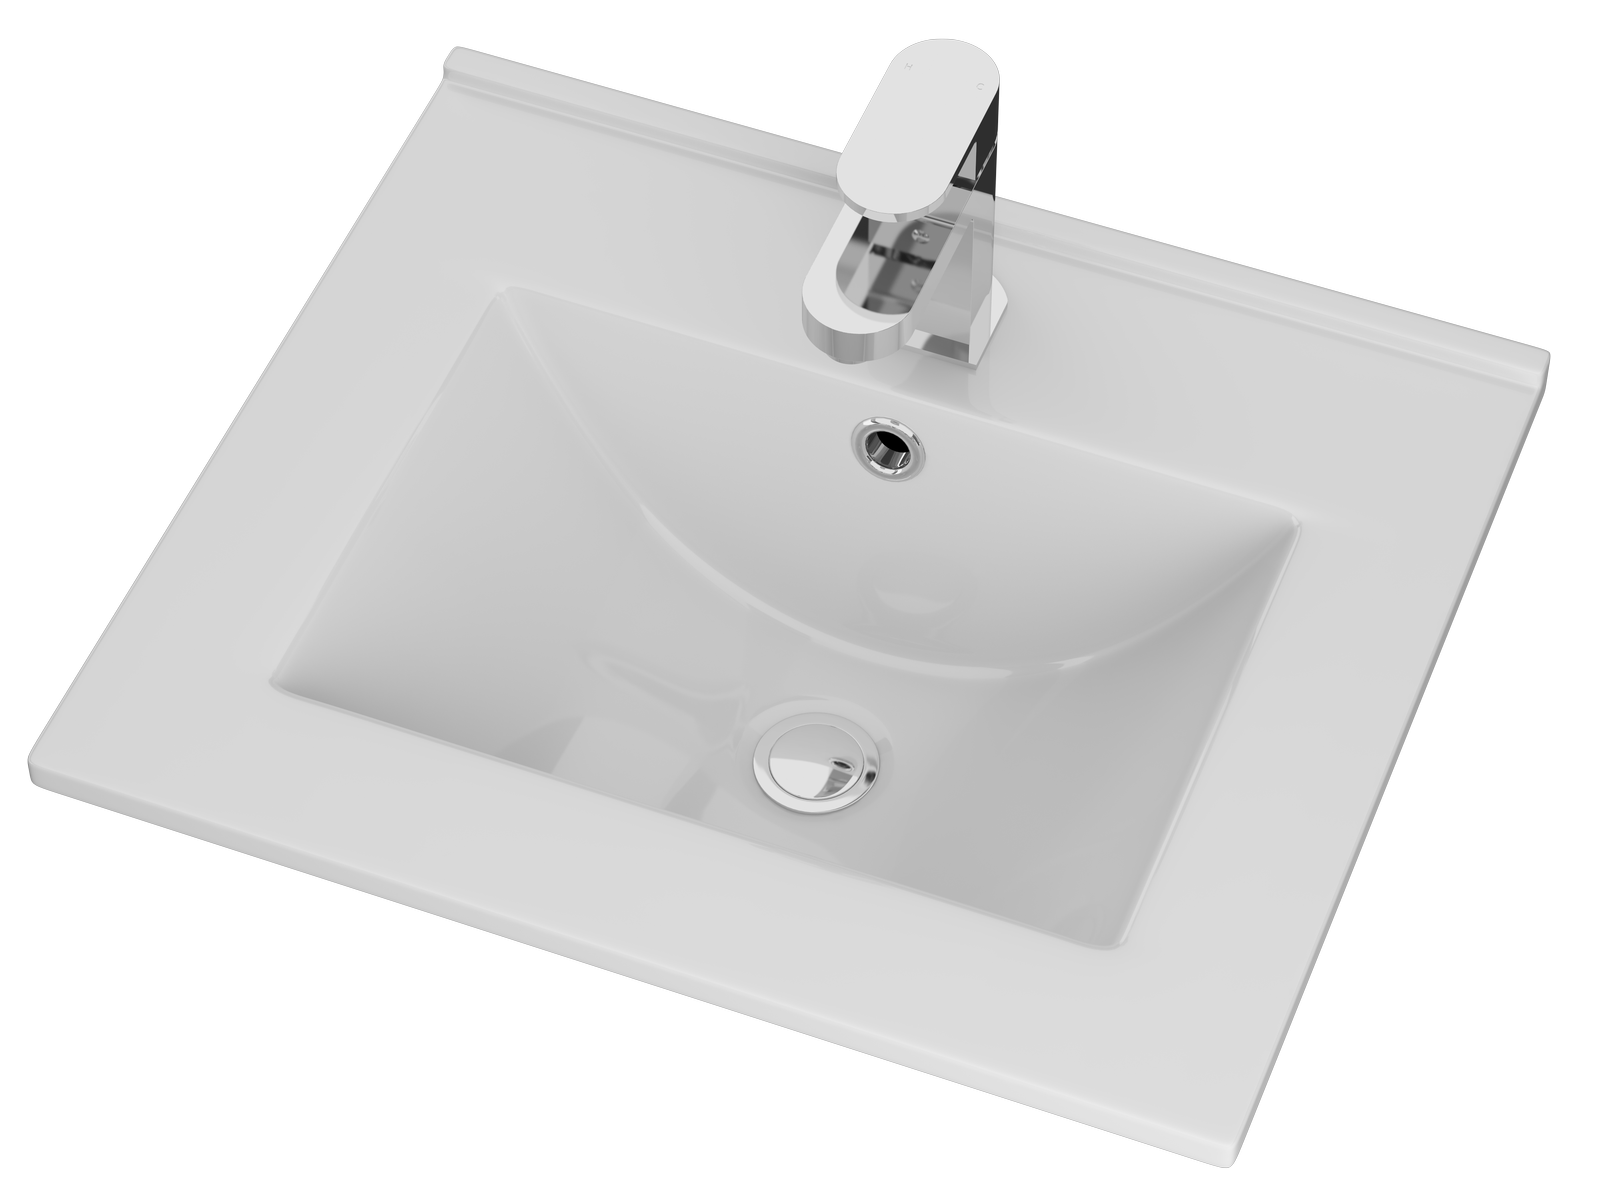 Cassellie Idon Ceramic Thin Edge Vanity Unit Basin - 515mm Wide - 1 Tap Hole - White